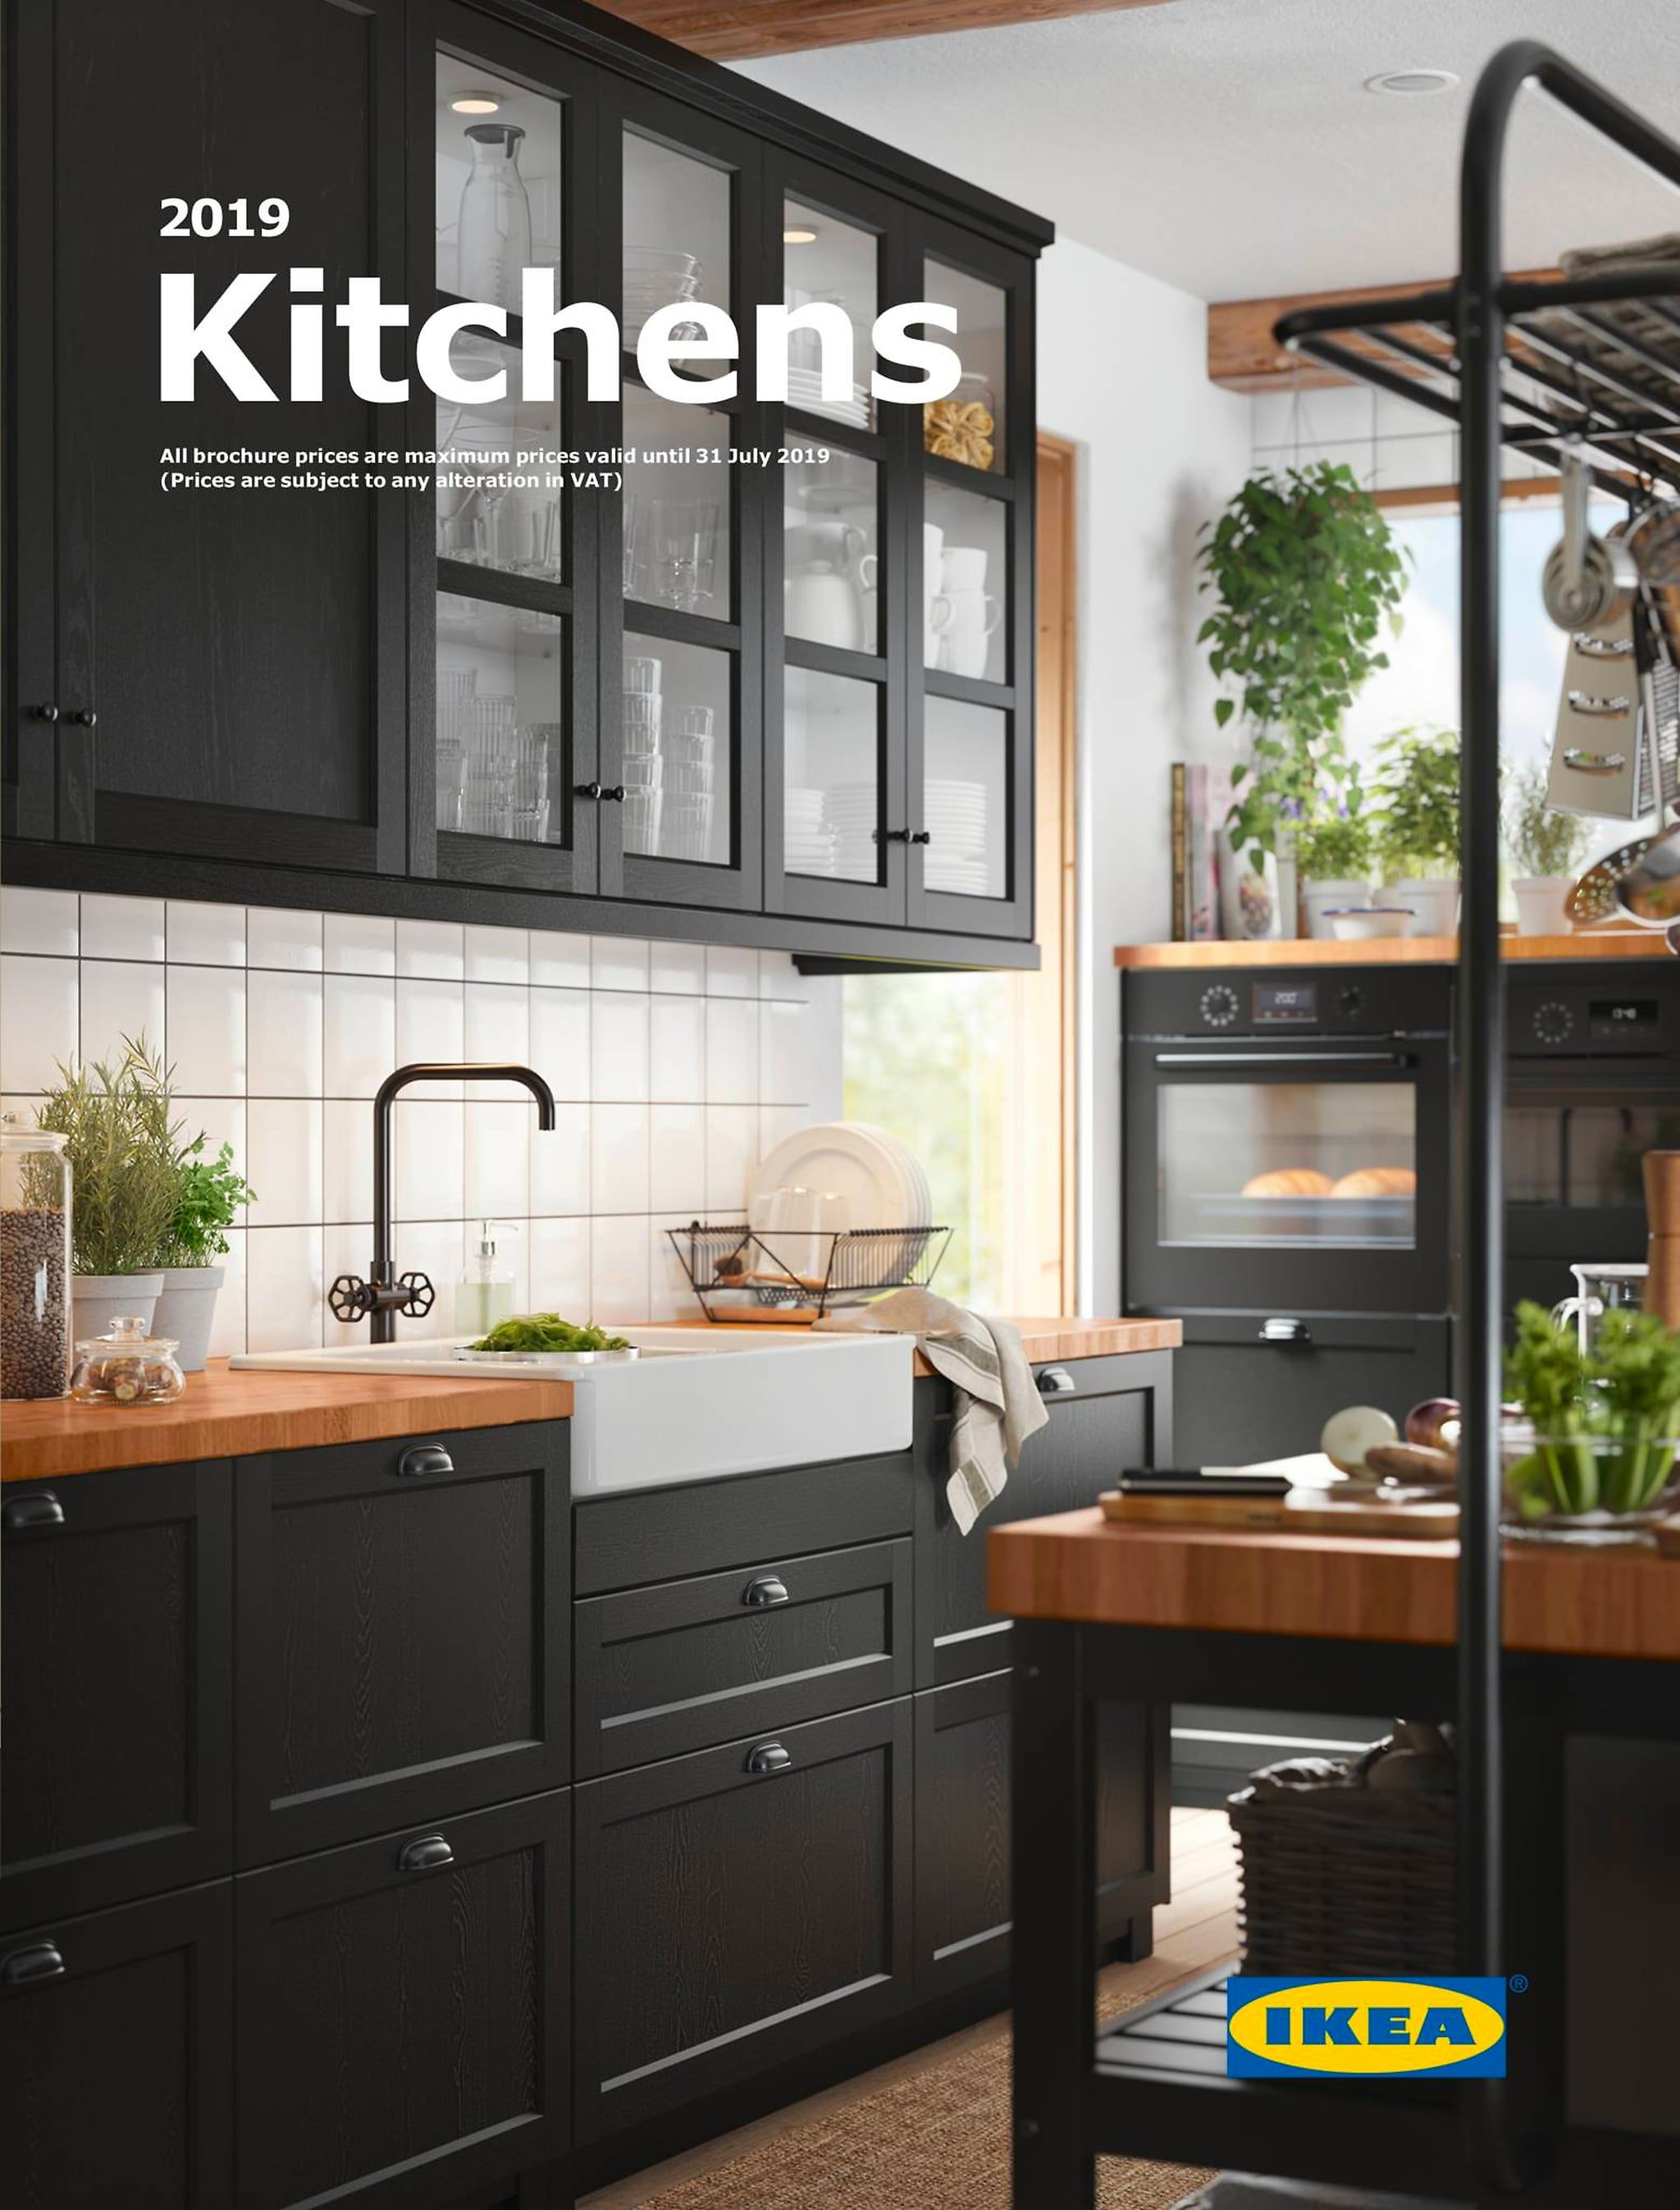 Ikea Metod Pdf Ikea 2019 Catalogue Pdf Concept The Ikea 2019 Catalogue Pdf